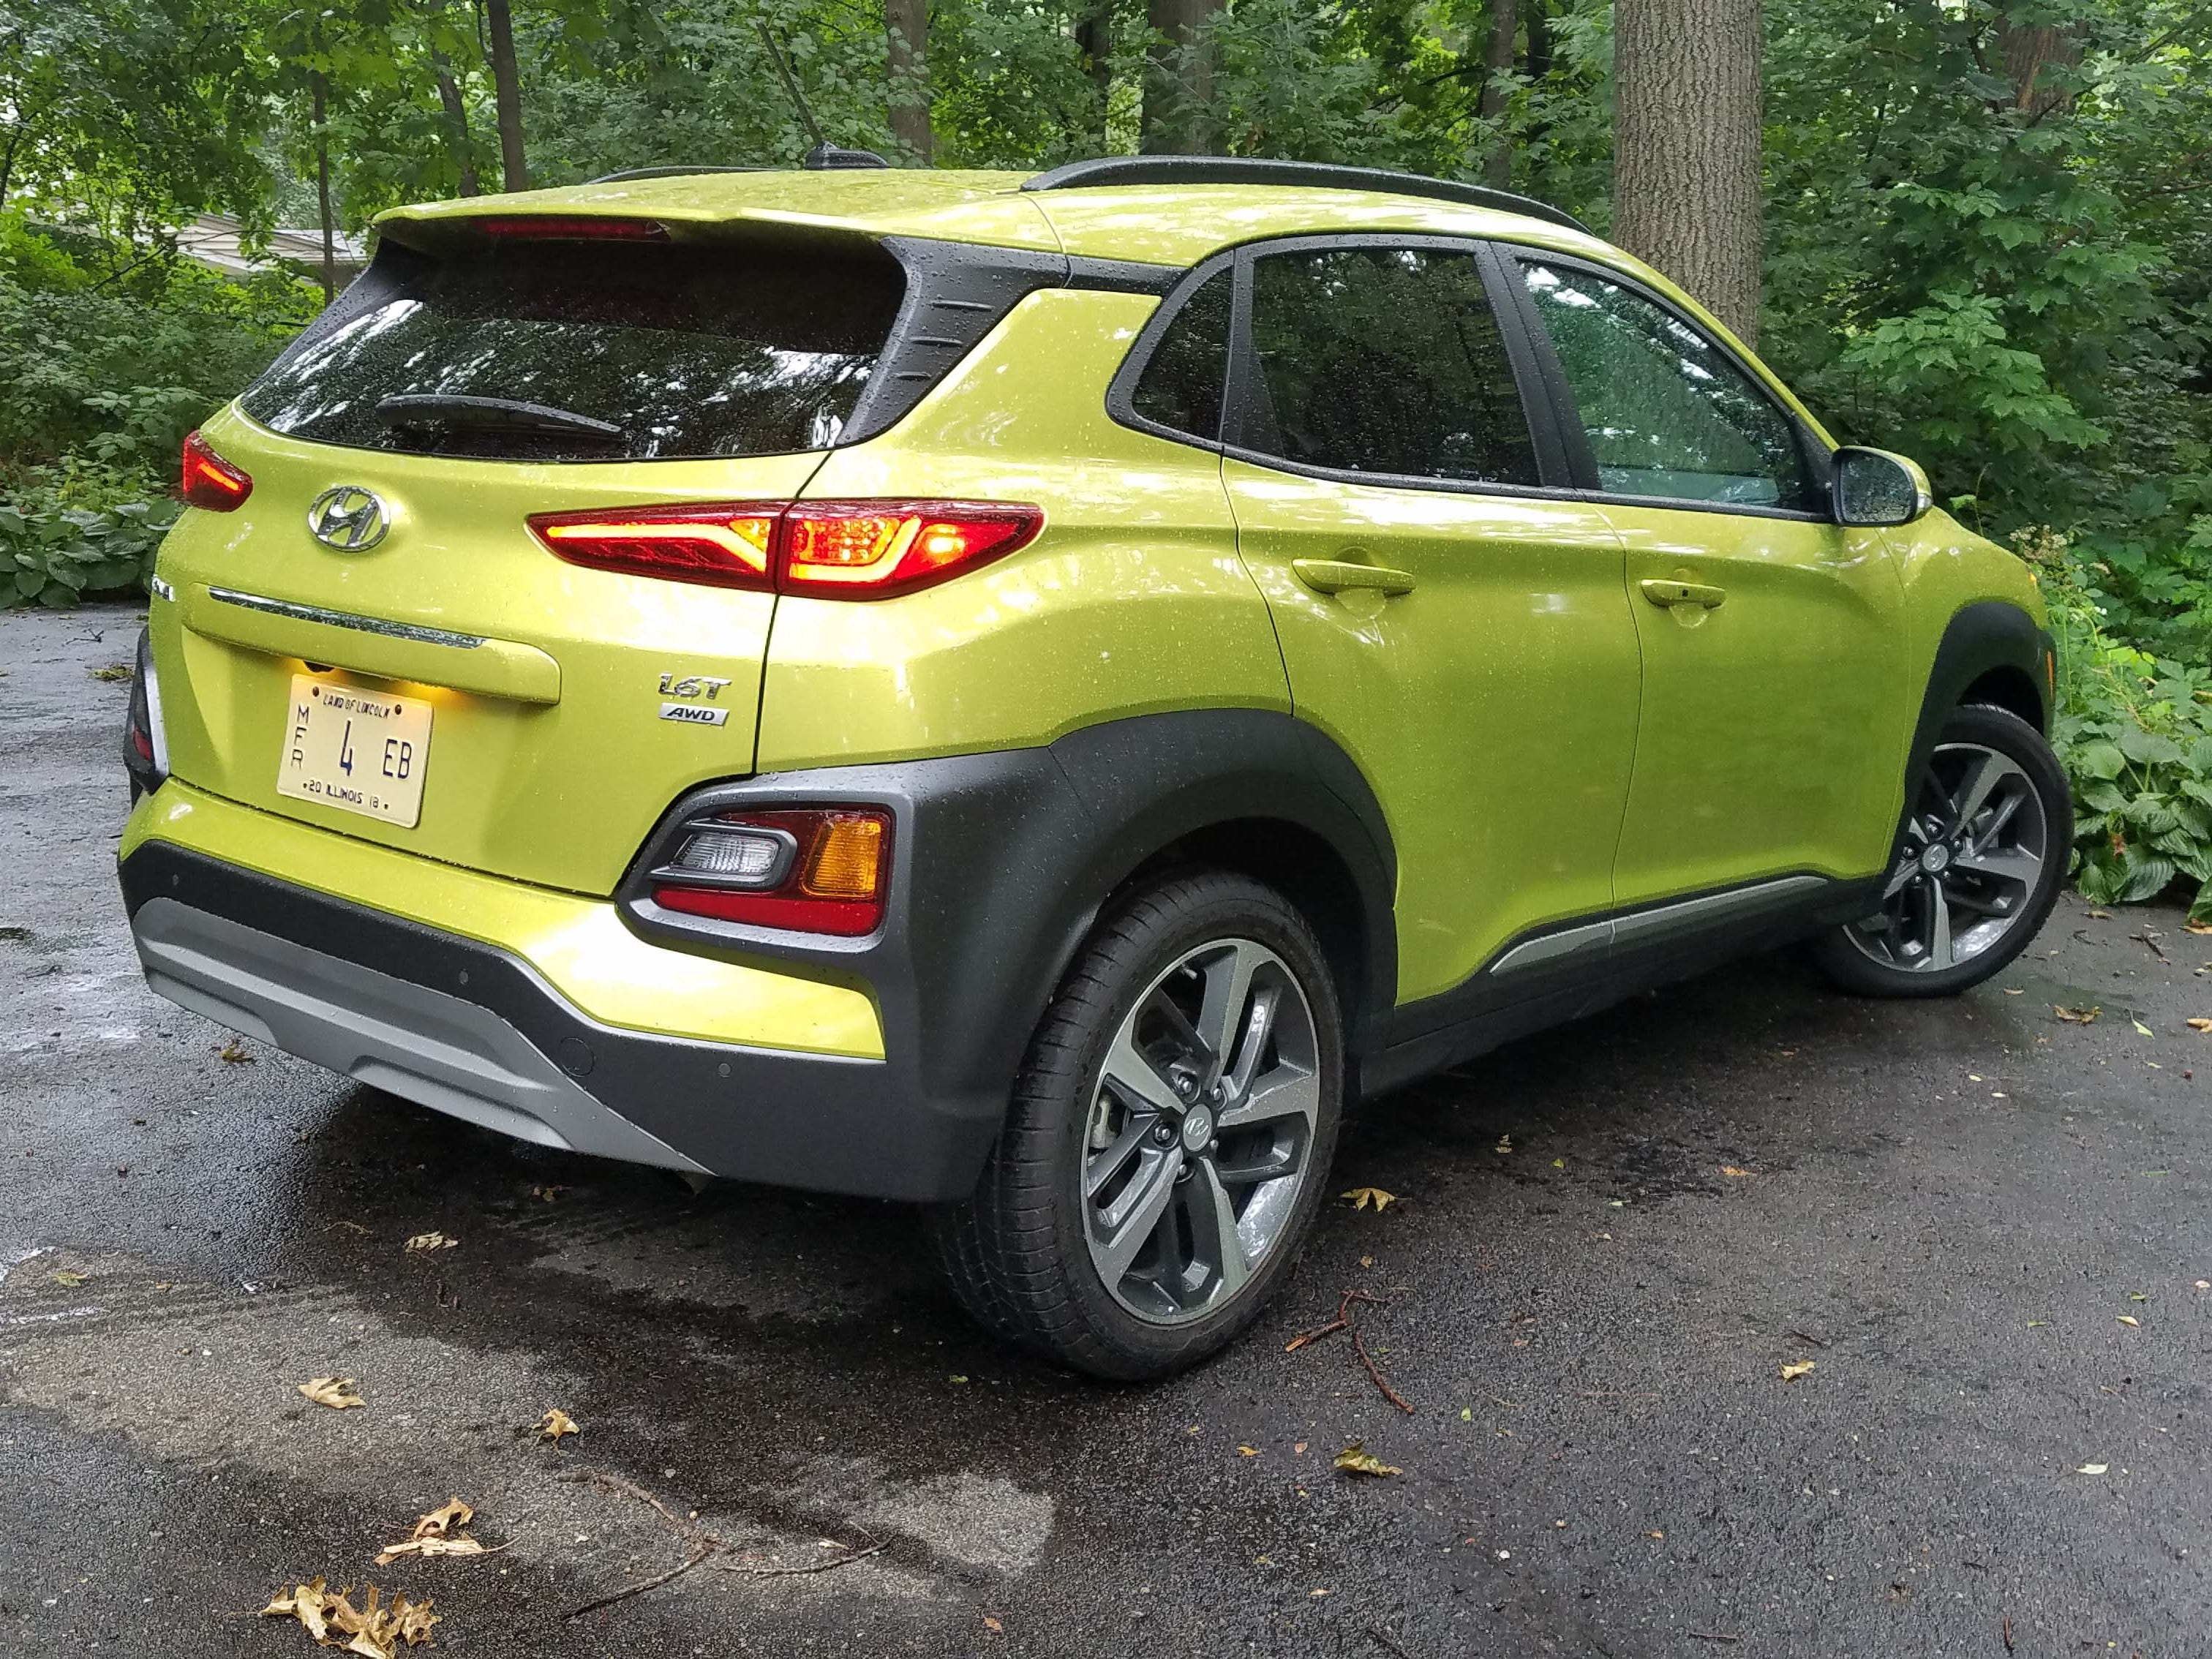 Five doors, cladding, raised seating position - yup, the 2018 Hyundai Kona is a crossover alright. But with tight handling, it shares its character with the Veolster Coupe and Elantra sedan.